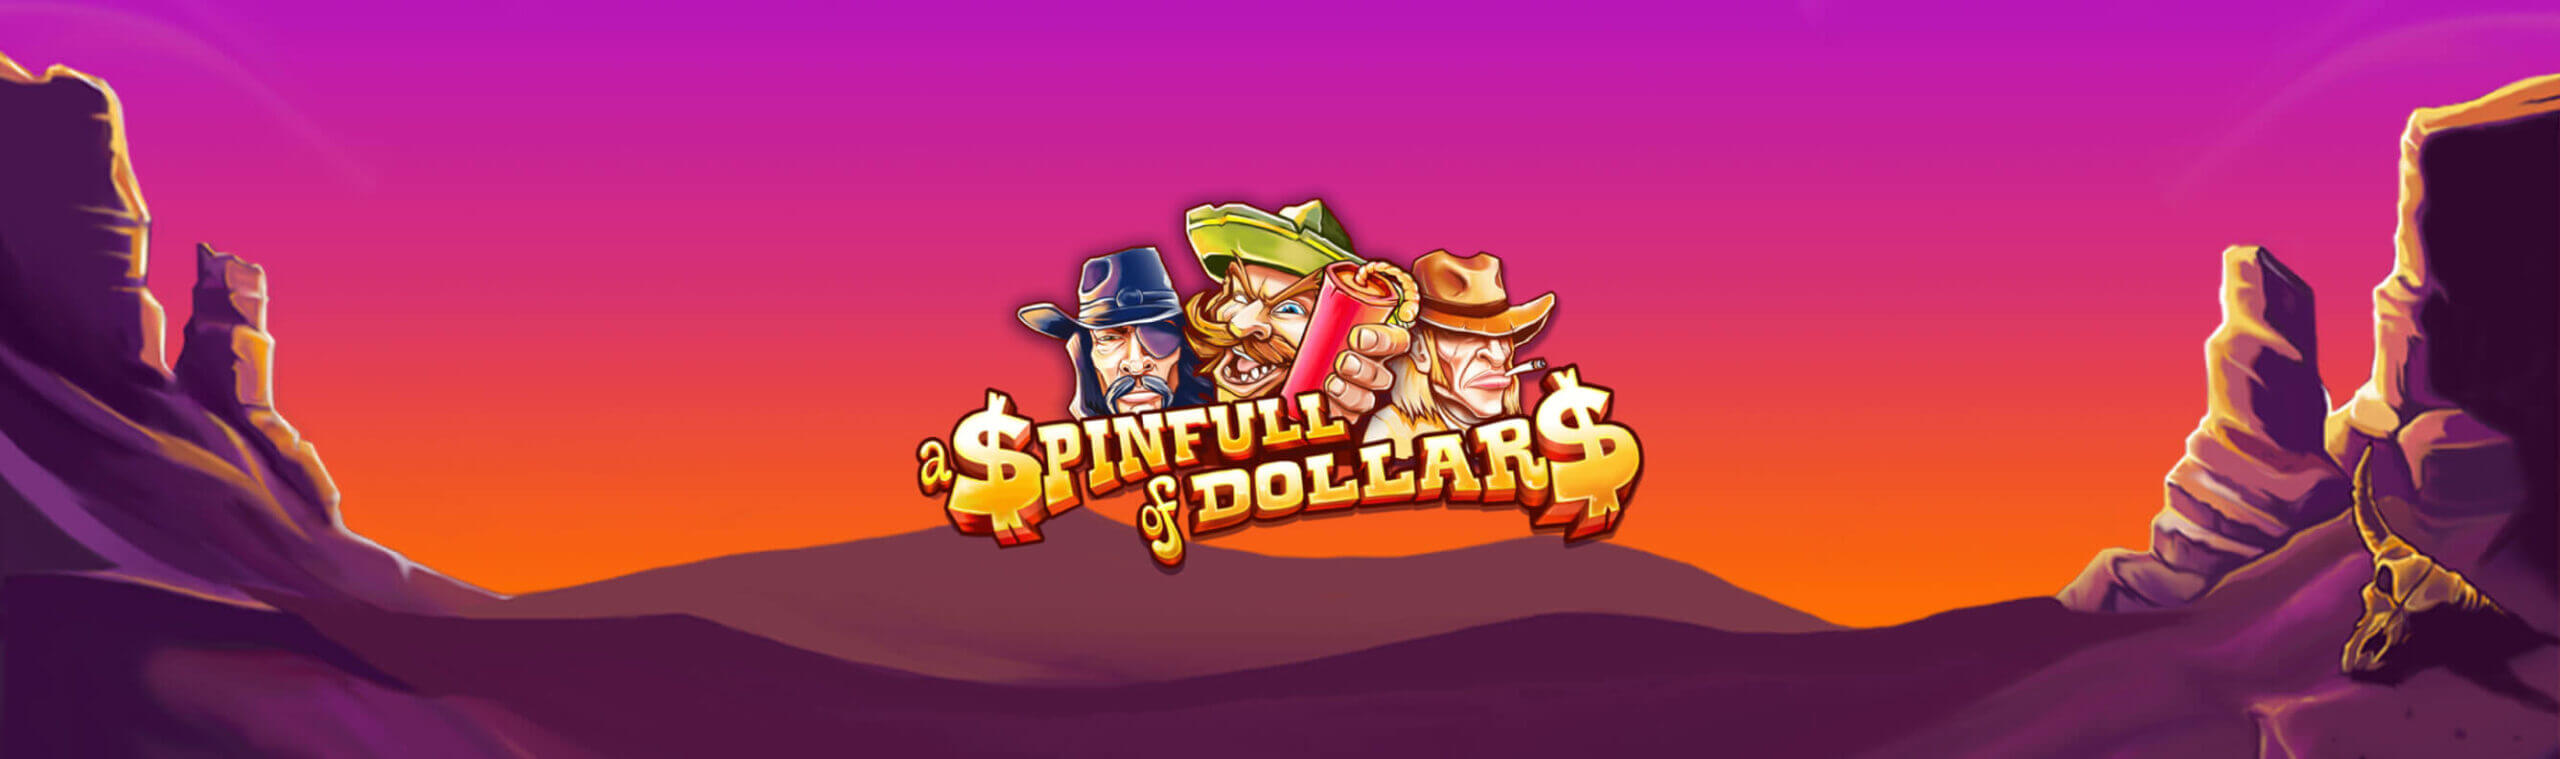 NEW GAME ALERT! A Spinfull of Dollars